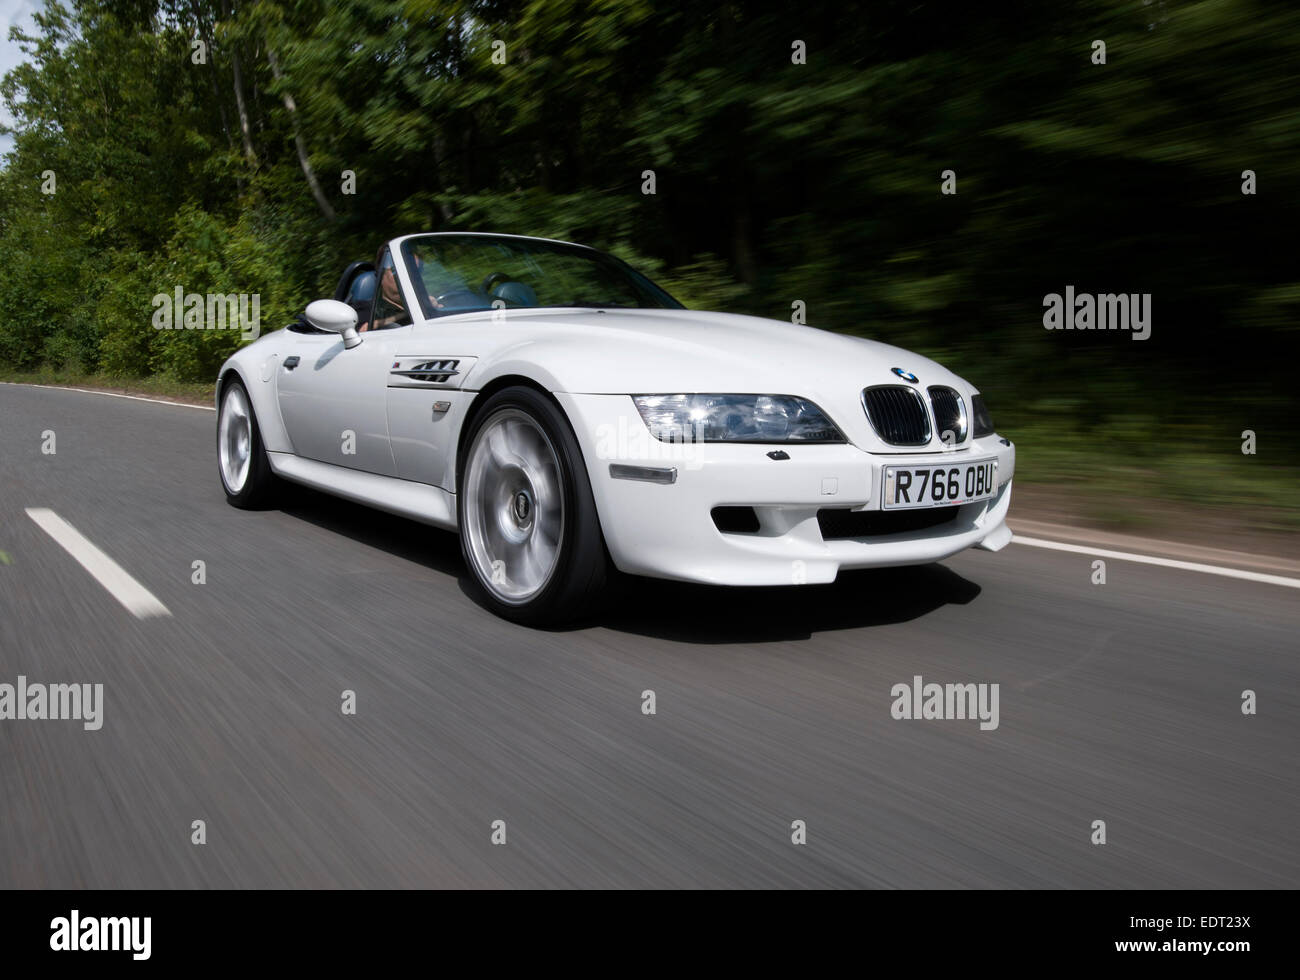 Bmw 2 Cabrio Stock Photos Bmw 2 Cabrio Stock Images Alamy